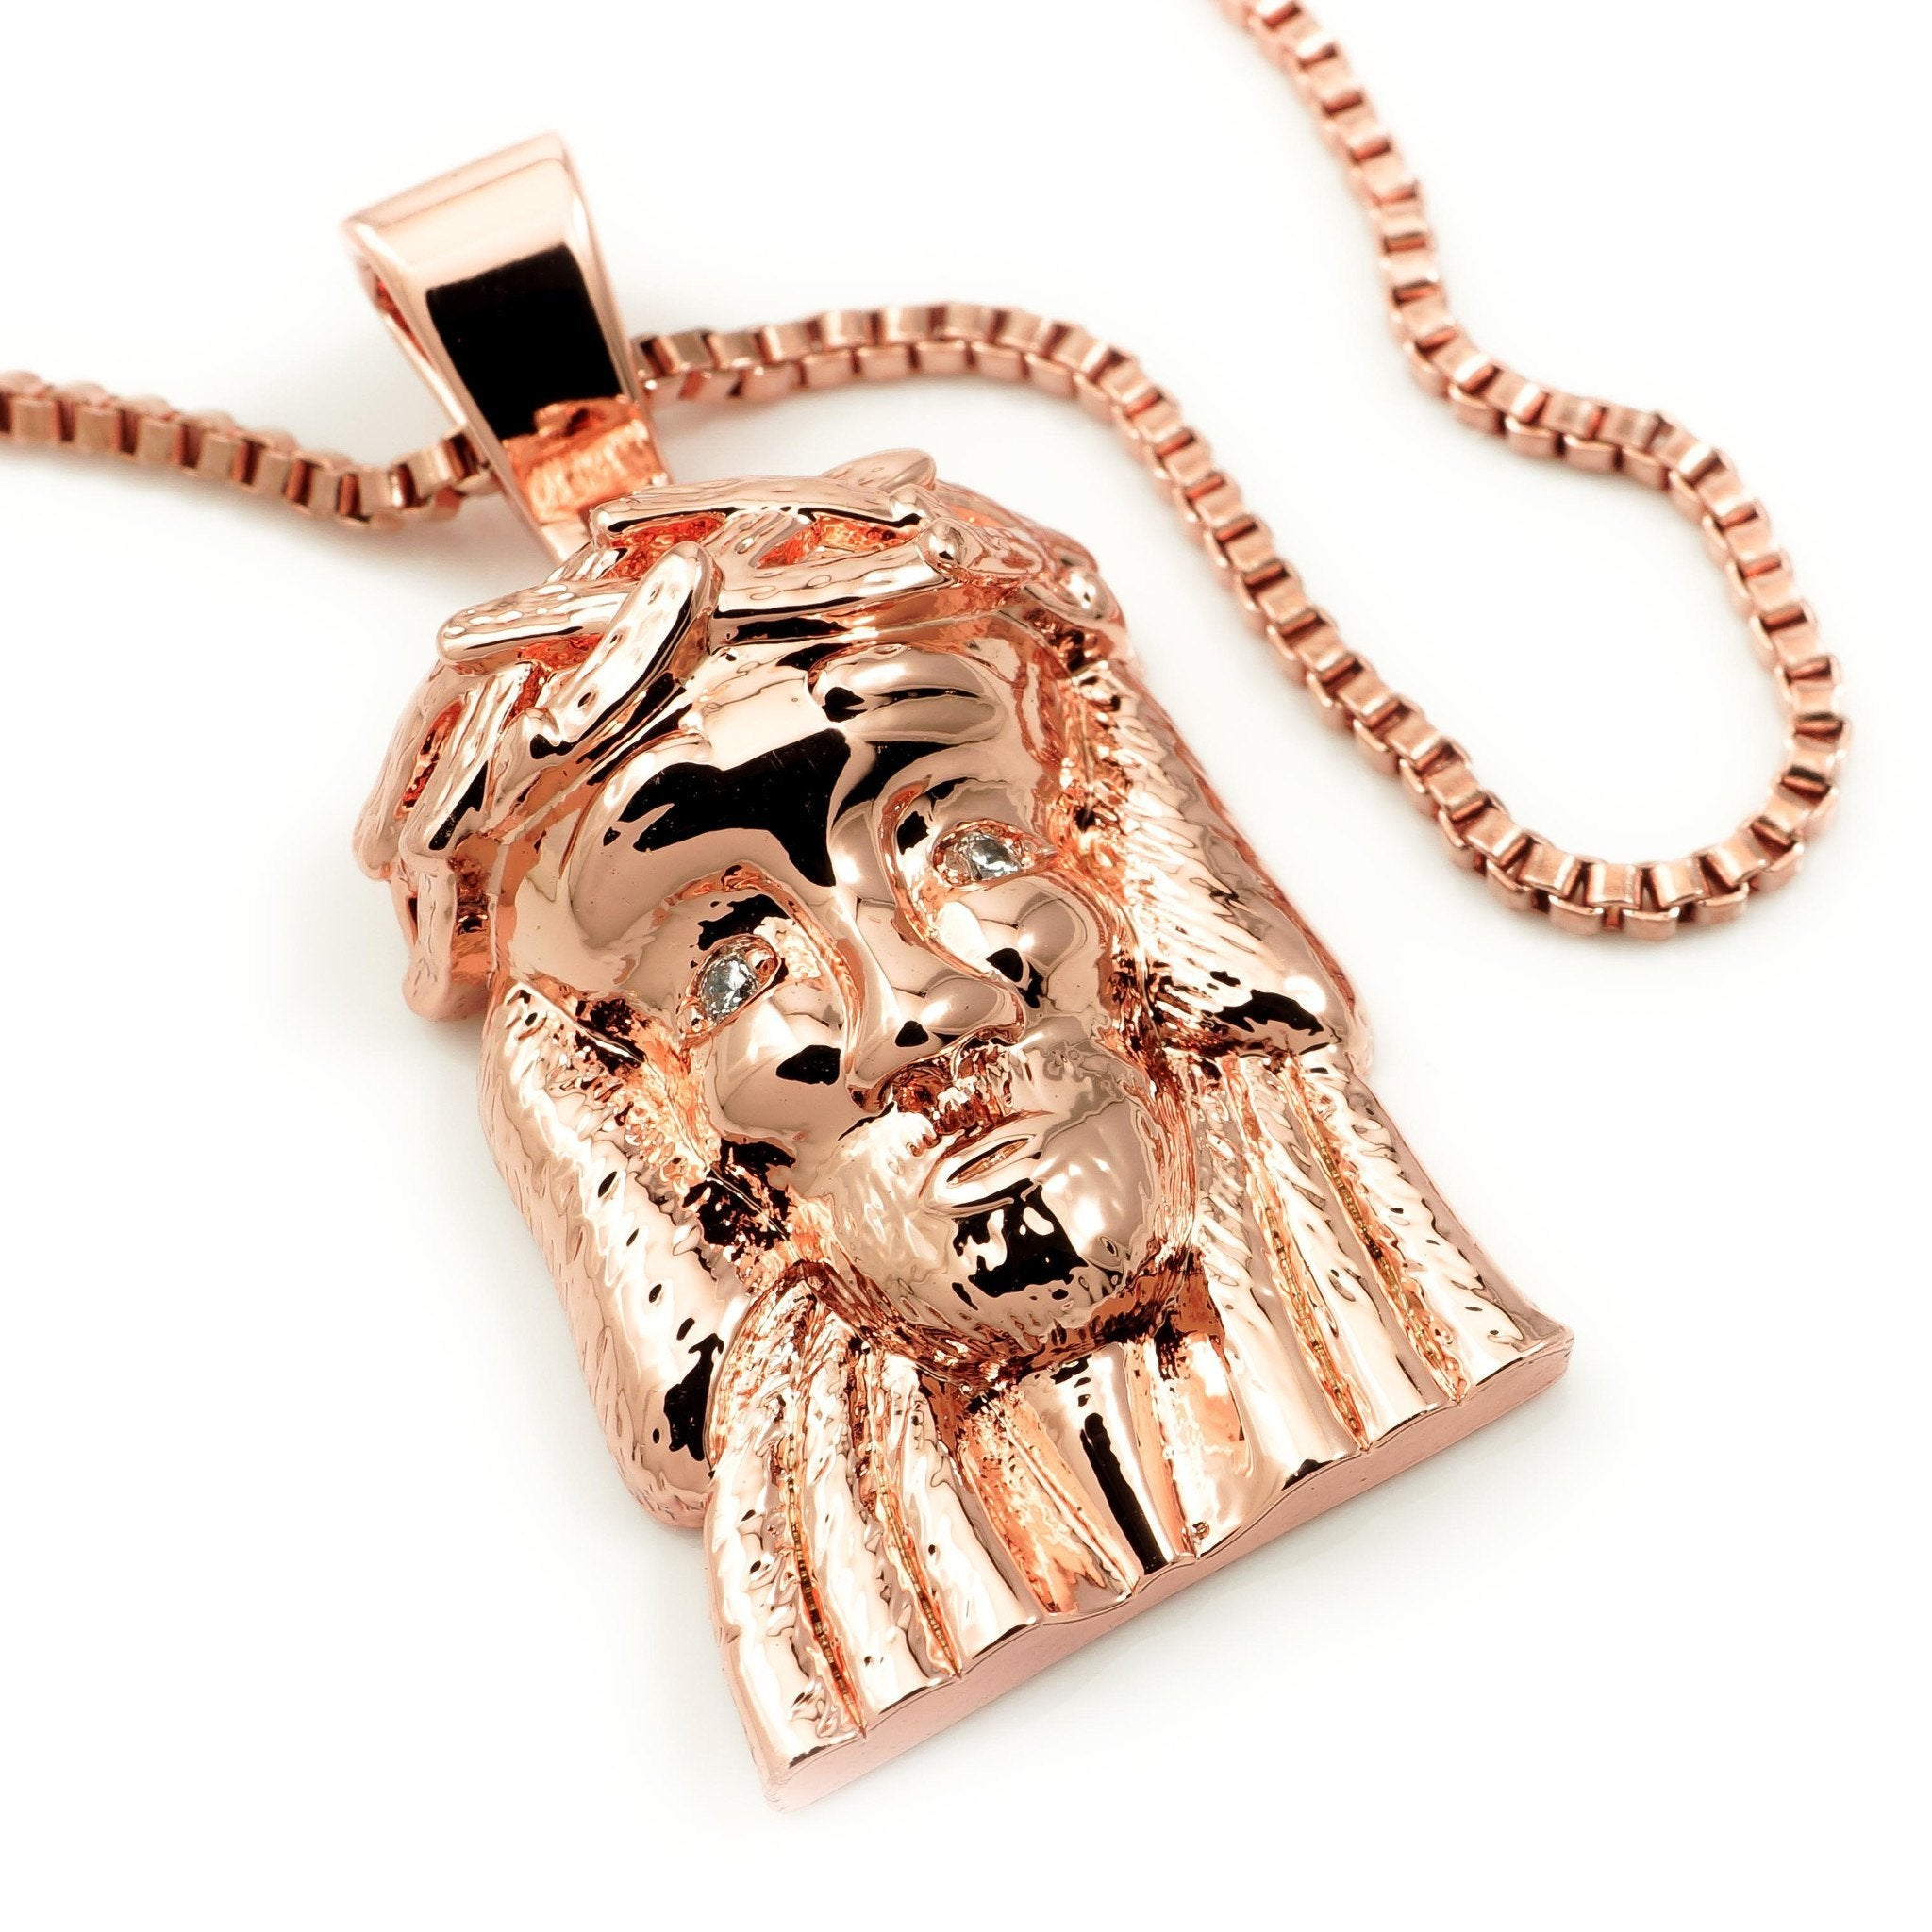 18k rose gold jesus piece 6 with box chain nivs bling 18k rose gold jesus piece 6 with box chain mozeypictures Image collections